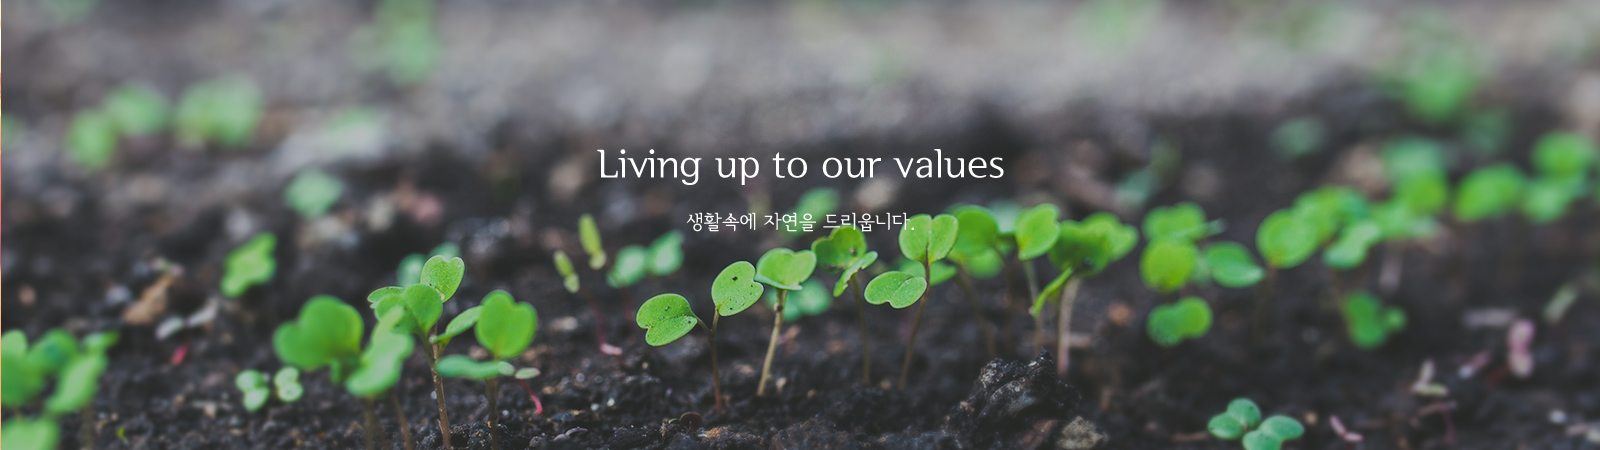 2. Living up to our values 생활속에 자연을 드리웁니다